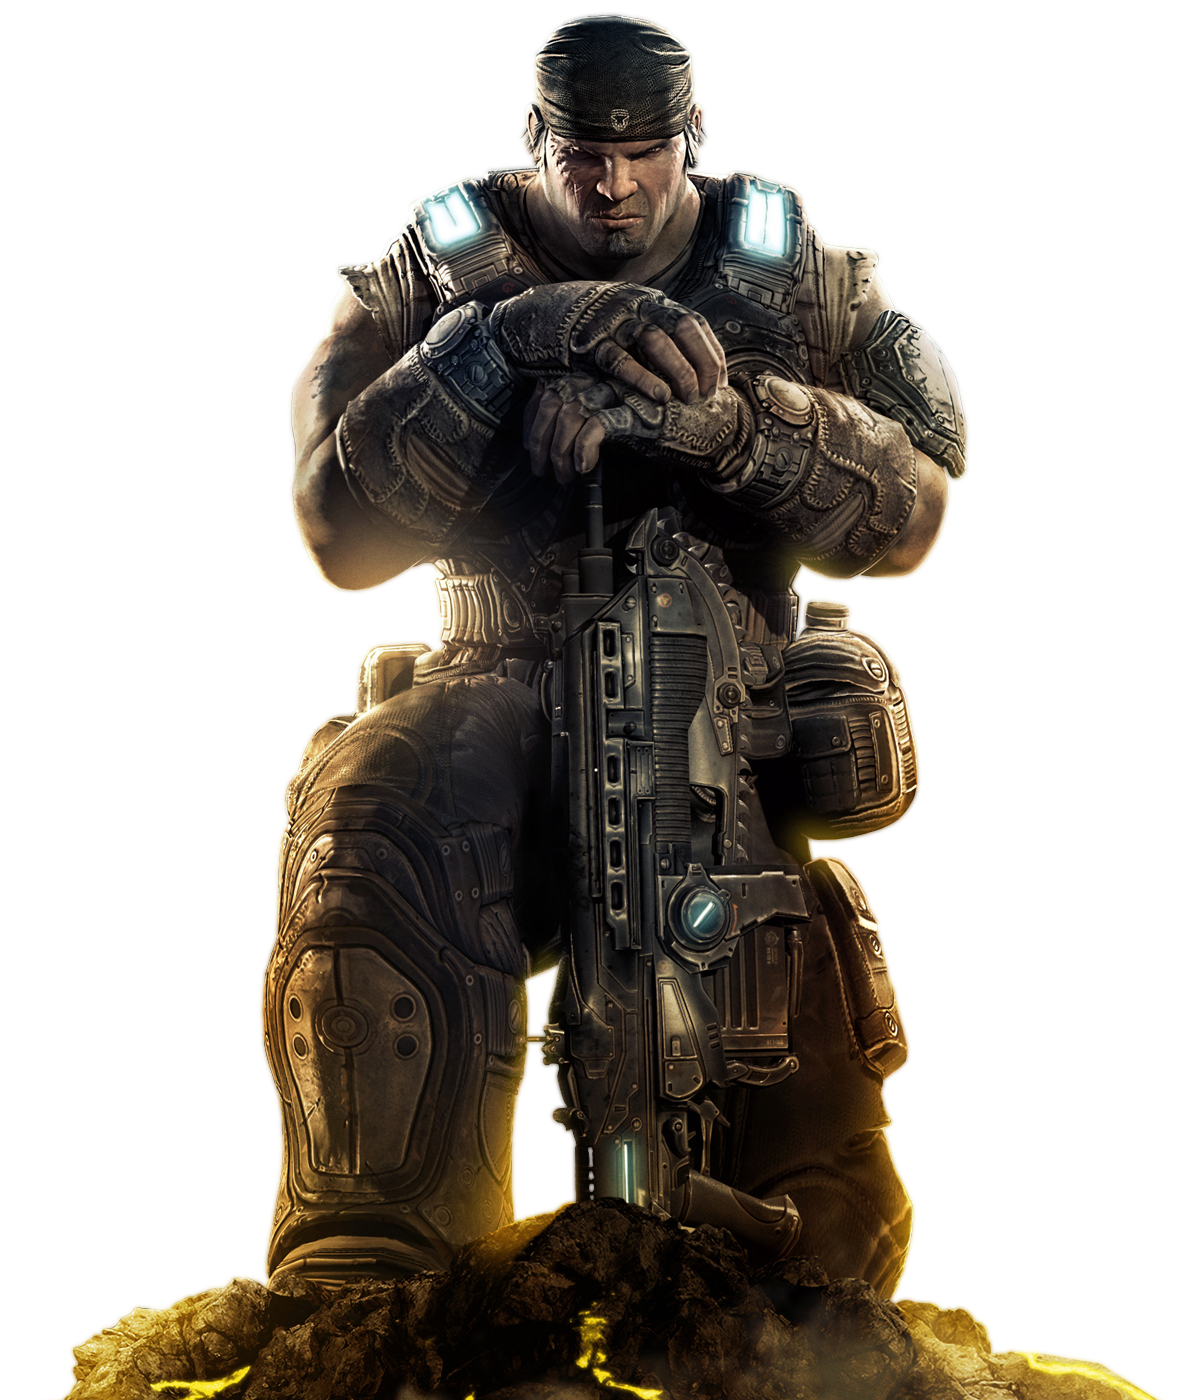 Gears of War PNG Image